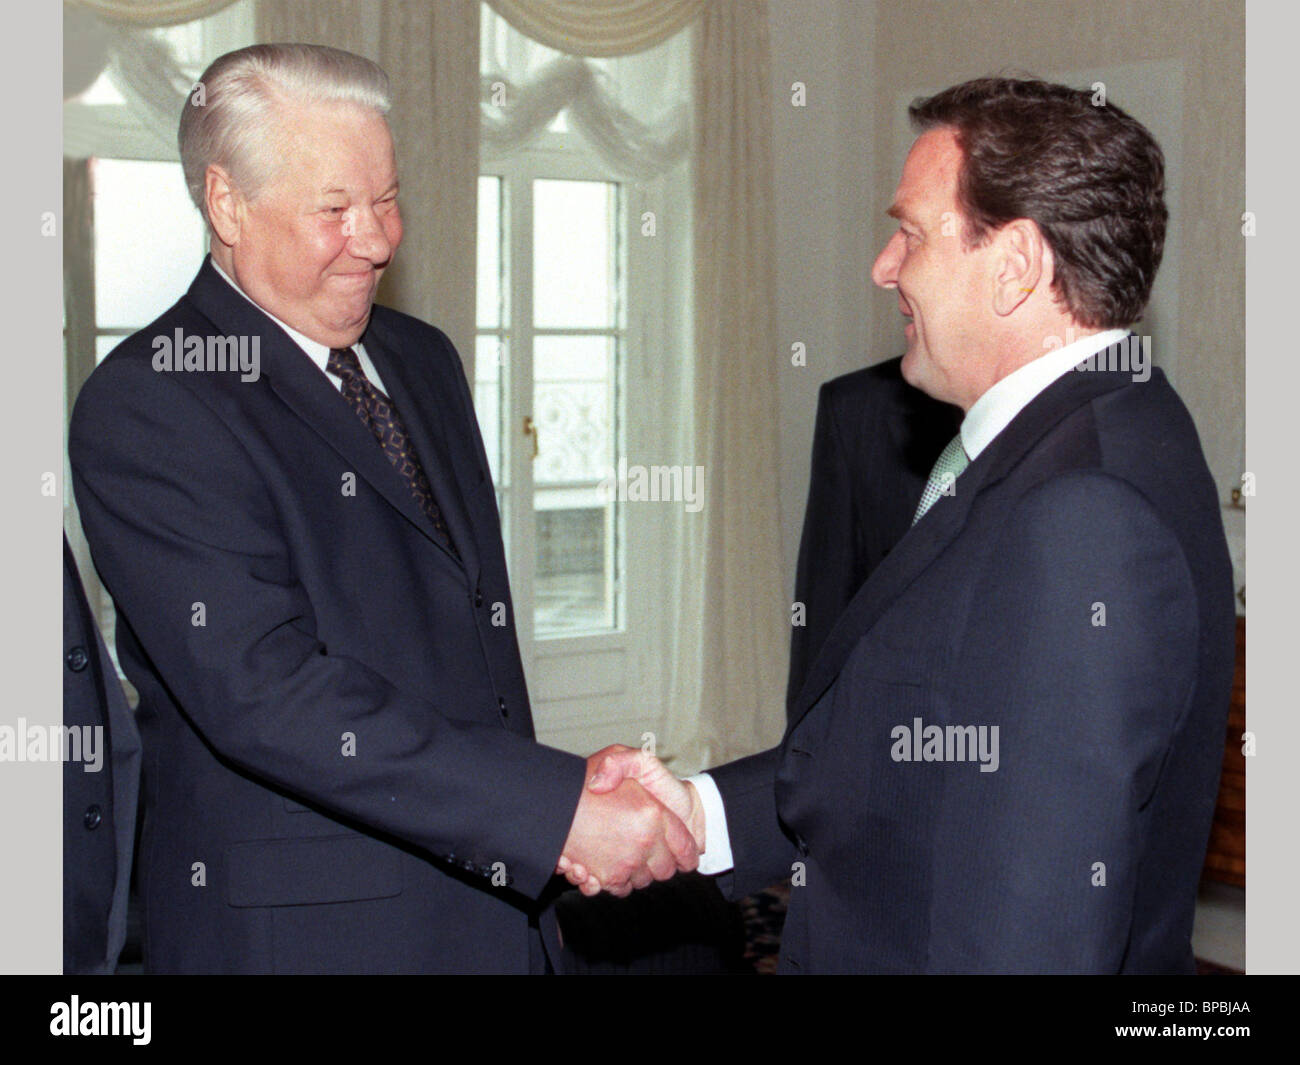 Yeltsin shaking hands with Schroeder on a filer - Stock Image